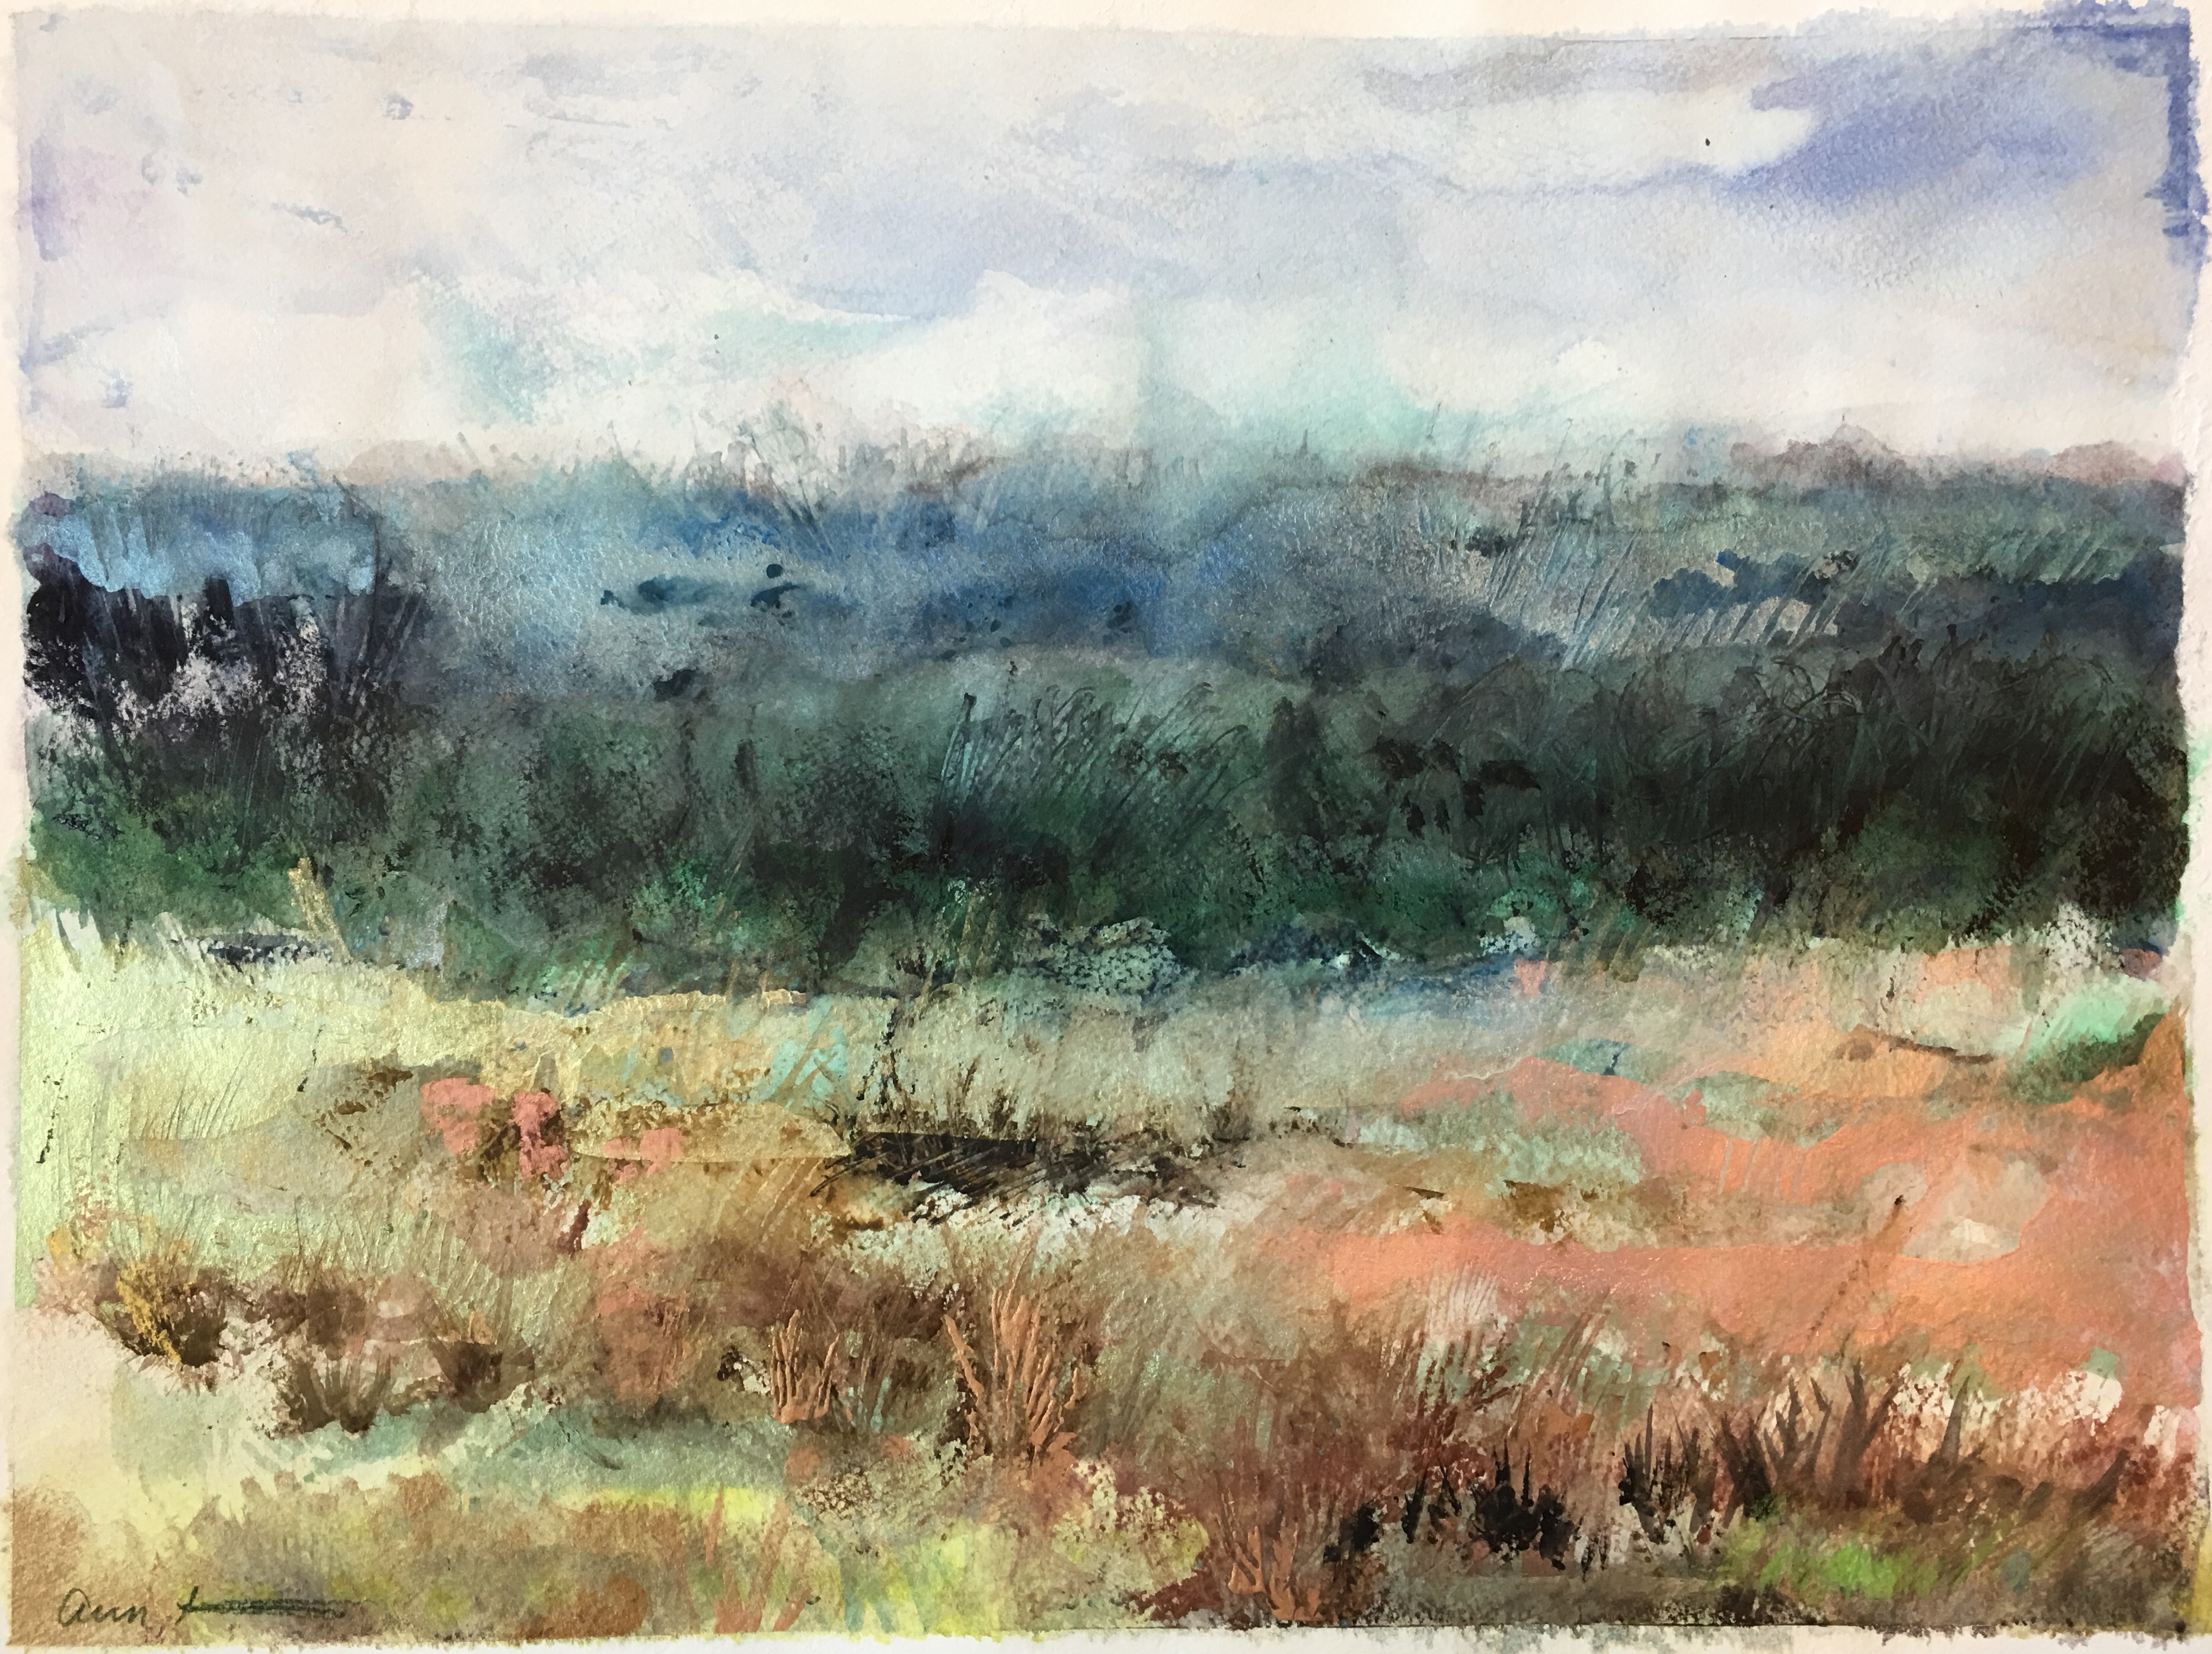 Above the Valley by Ann Stretton